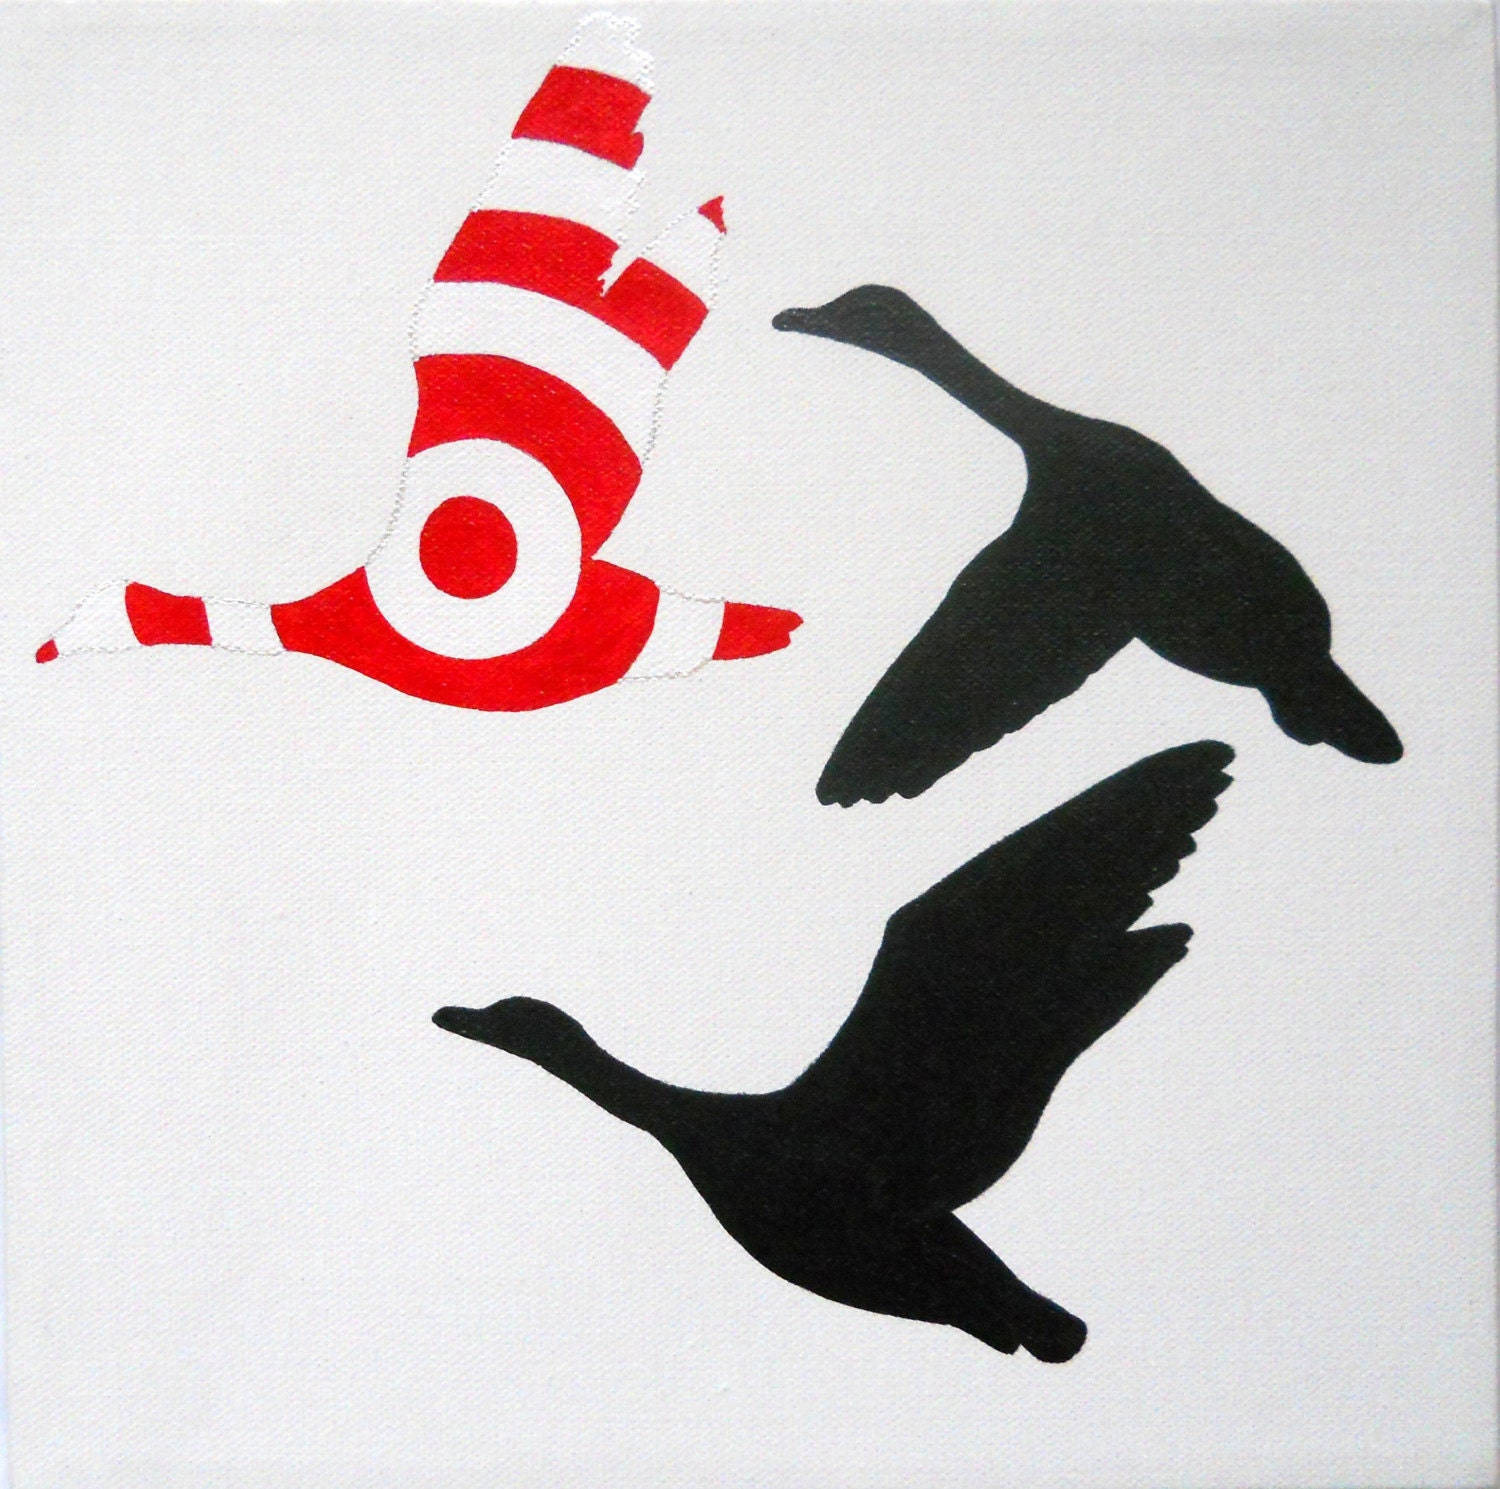 Ducks Silhouette 10x10 medium original painting - MADE TO ORDER - PreciousBeast